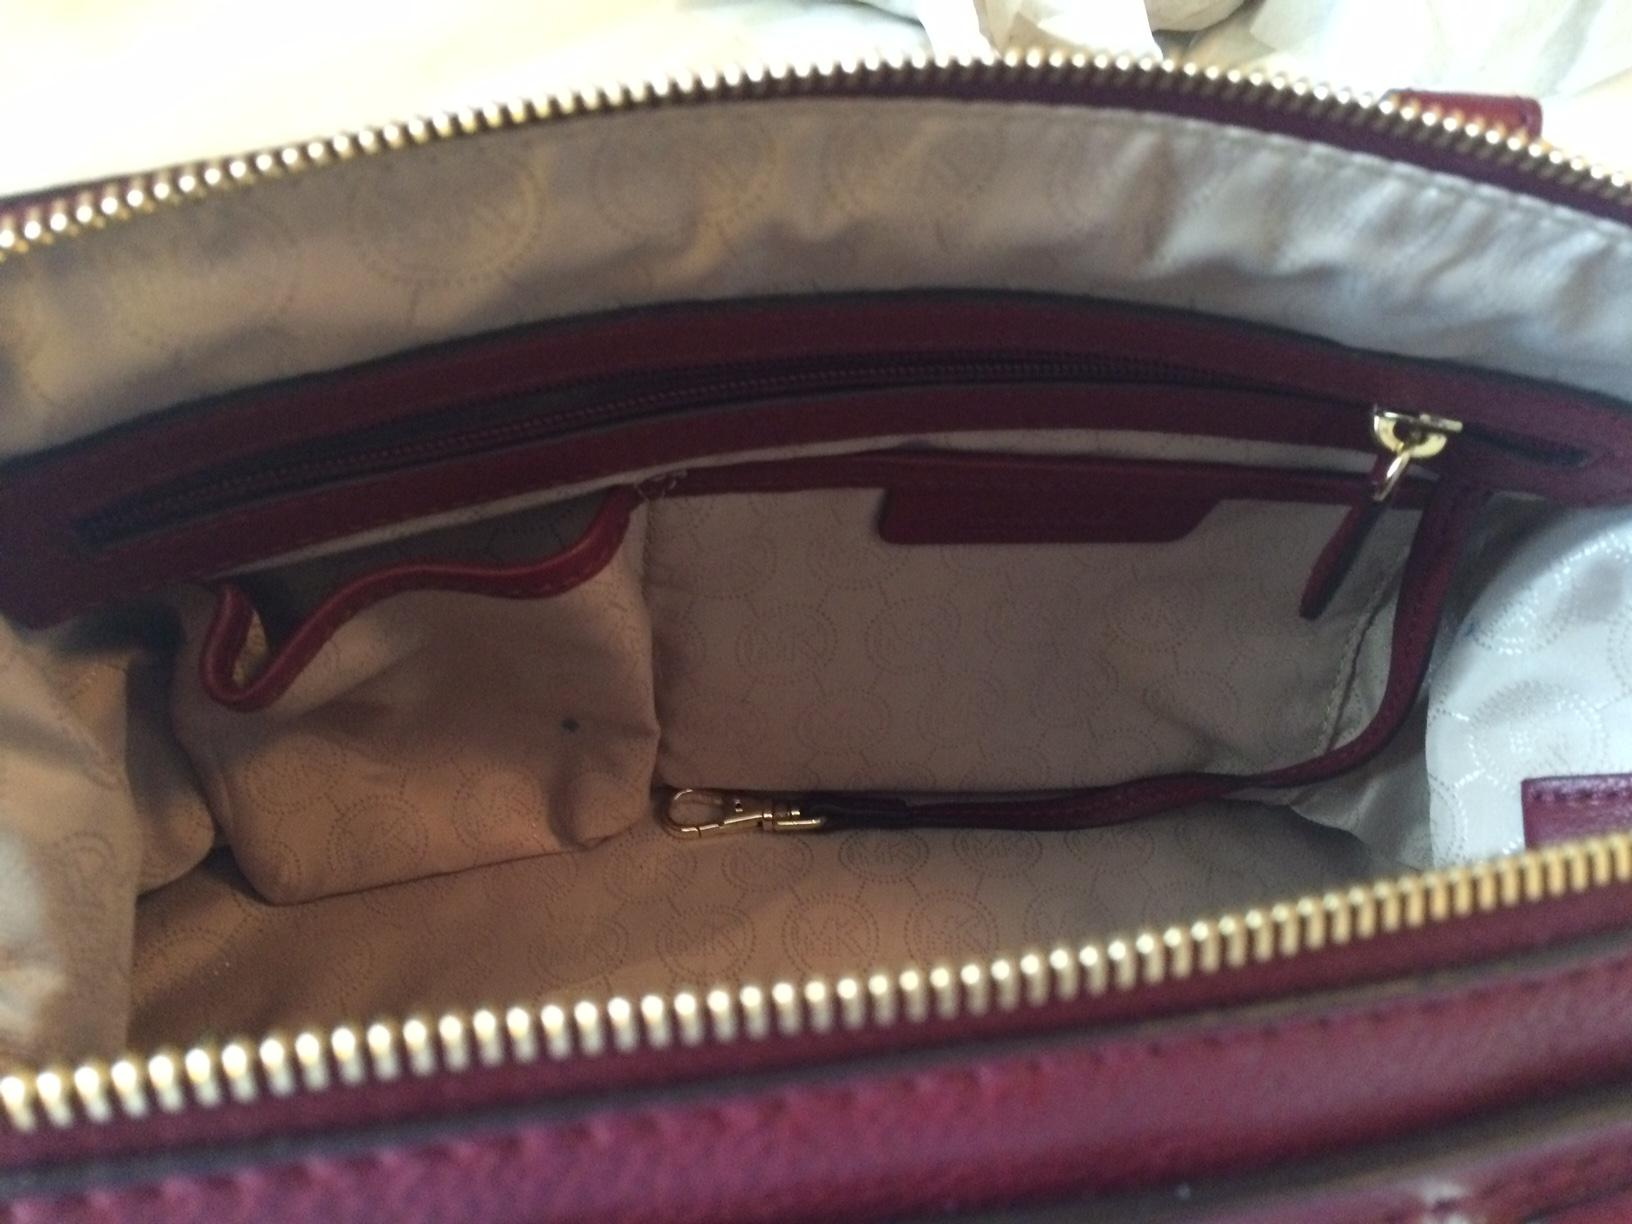 840b479f5ed8 ... coupon code for michael kors gilmore medium east west cinnabar leather  satchel tradesy 9c53c 96bbc